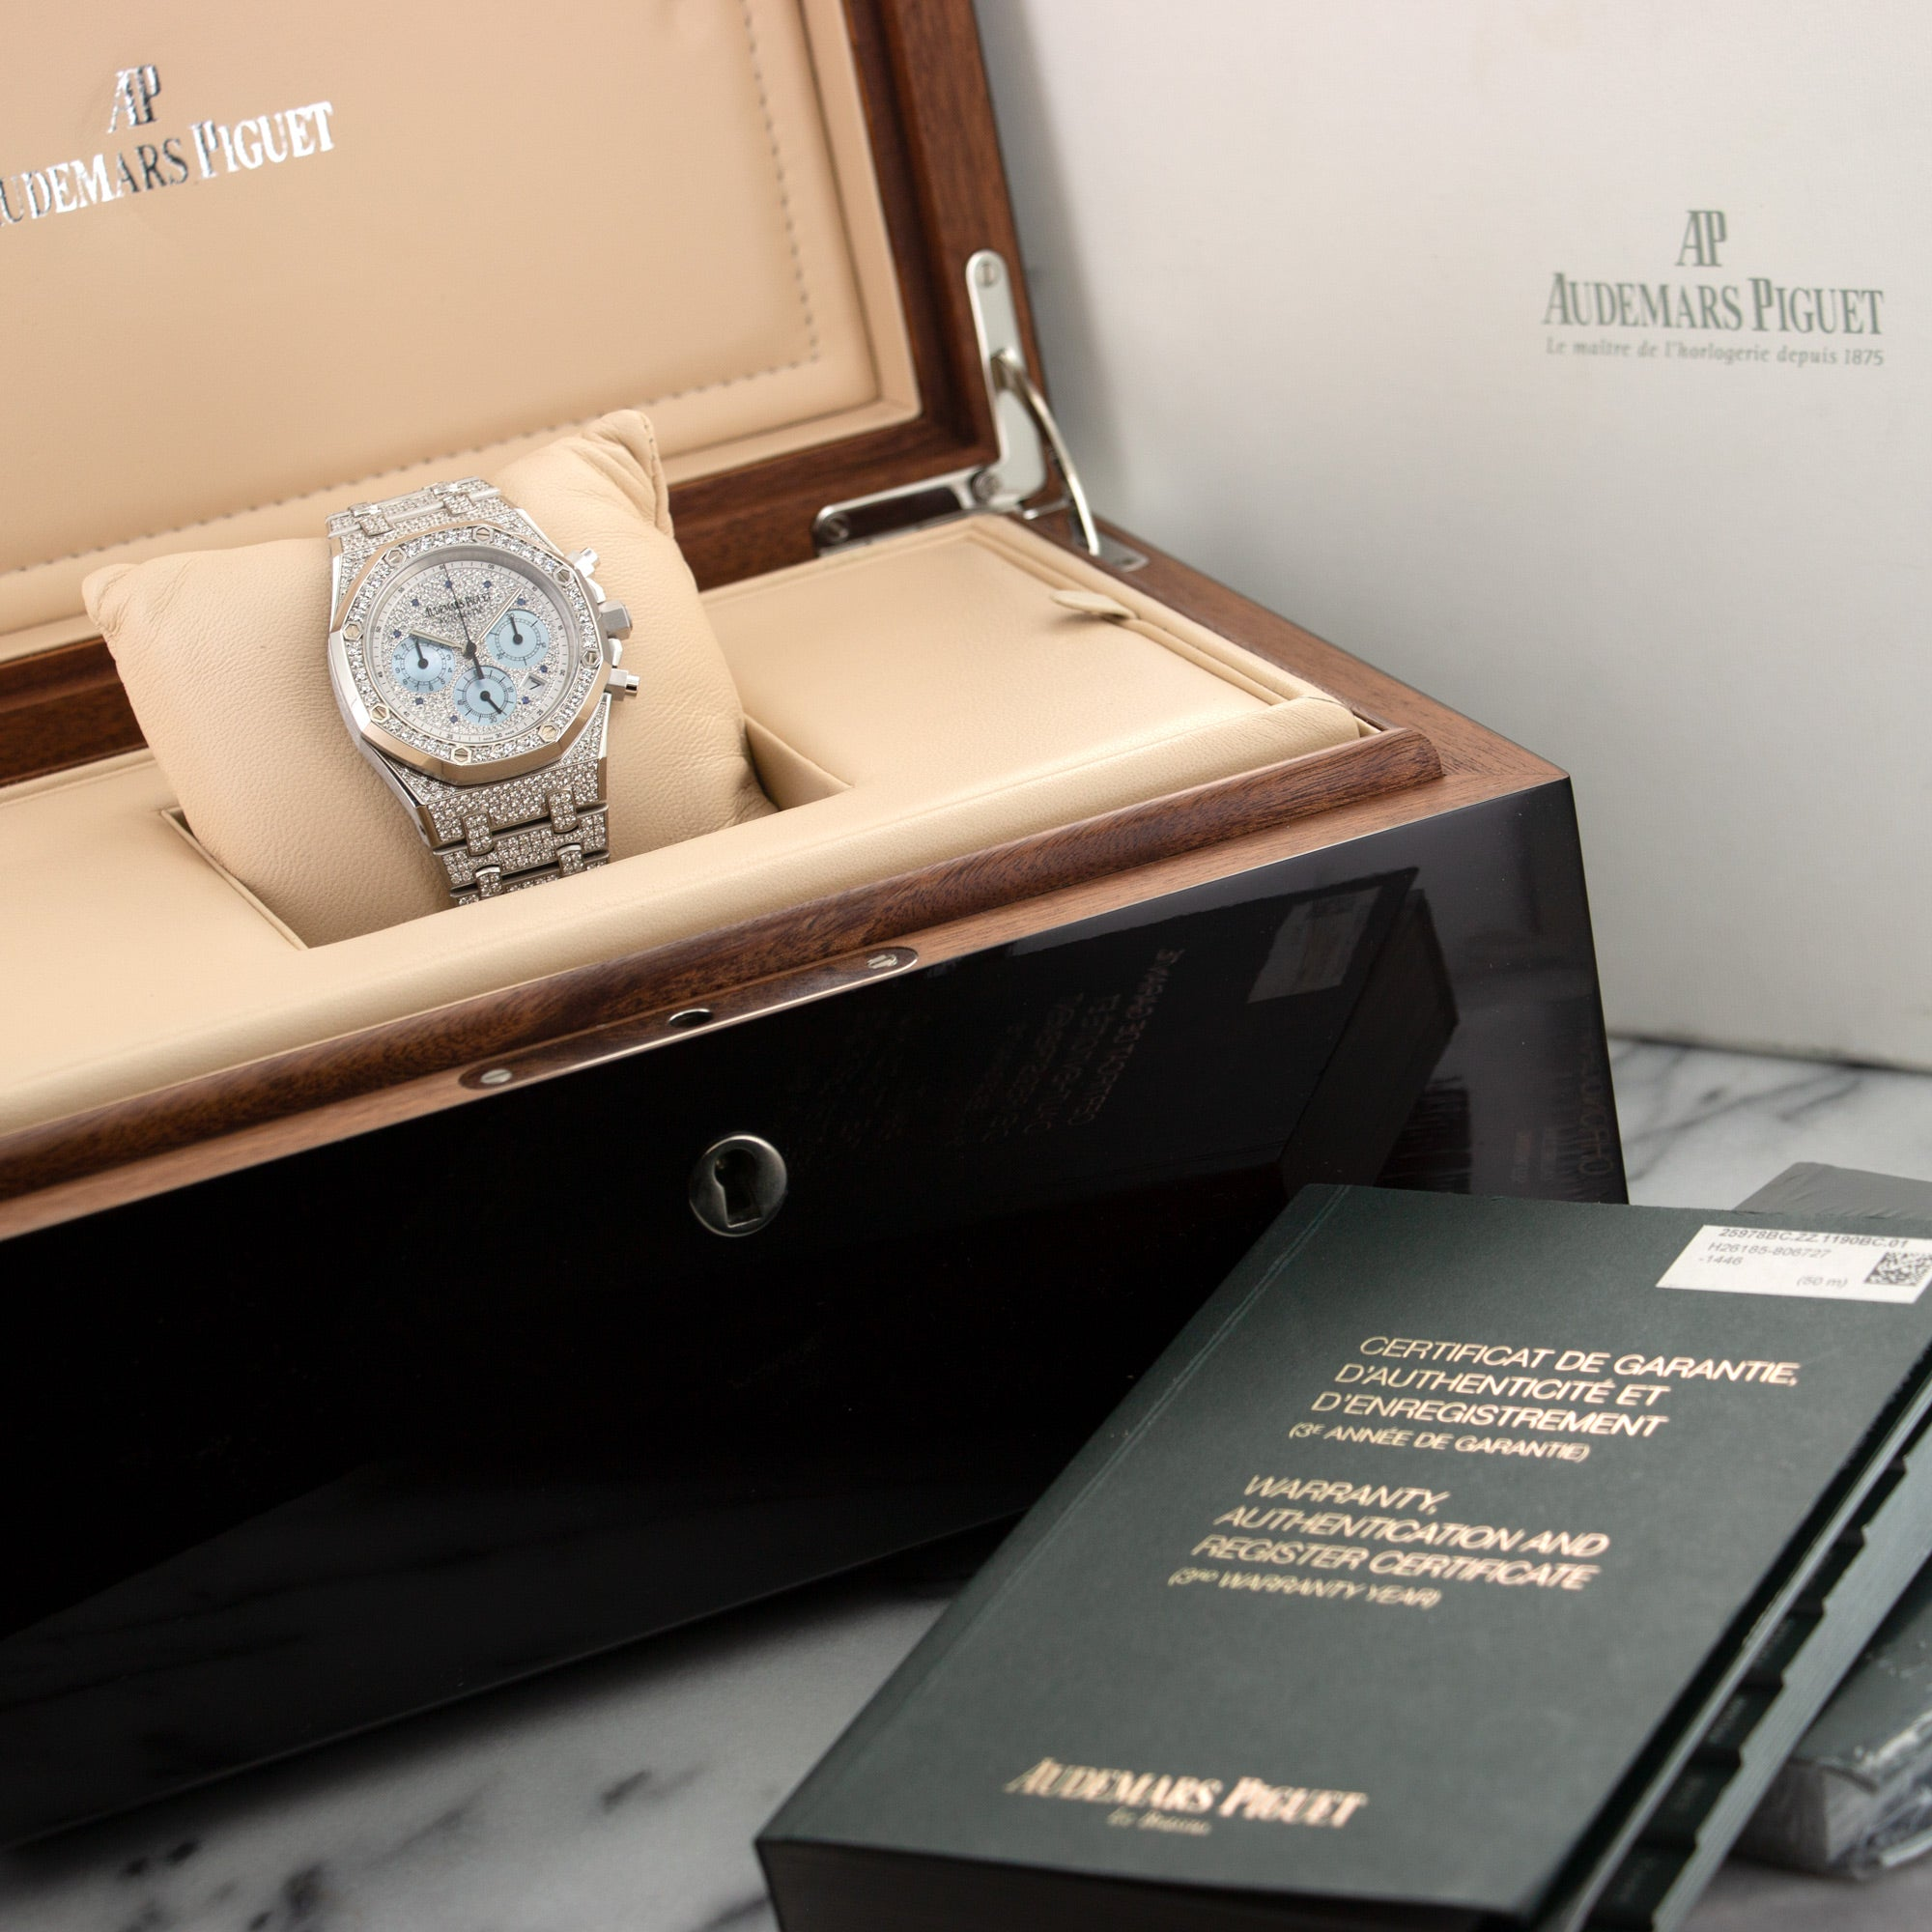 Audemars Piguet Royal Oak Chrono 25978BC.ZZ.1190BC.01 18k WG  Likely Never Polished, Original Finish Gents 18k WG Pave Diamonds with Mother of Pearl Subdials 39mm Automatic 2000s White Gold Pave Diamond Bracelet Original Box and Certificate